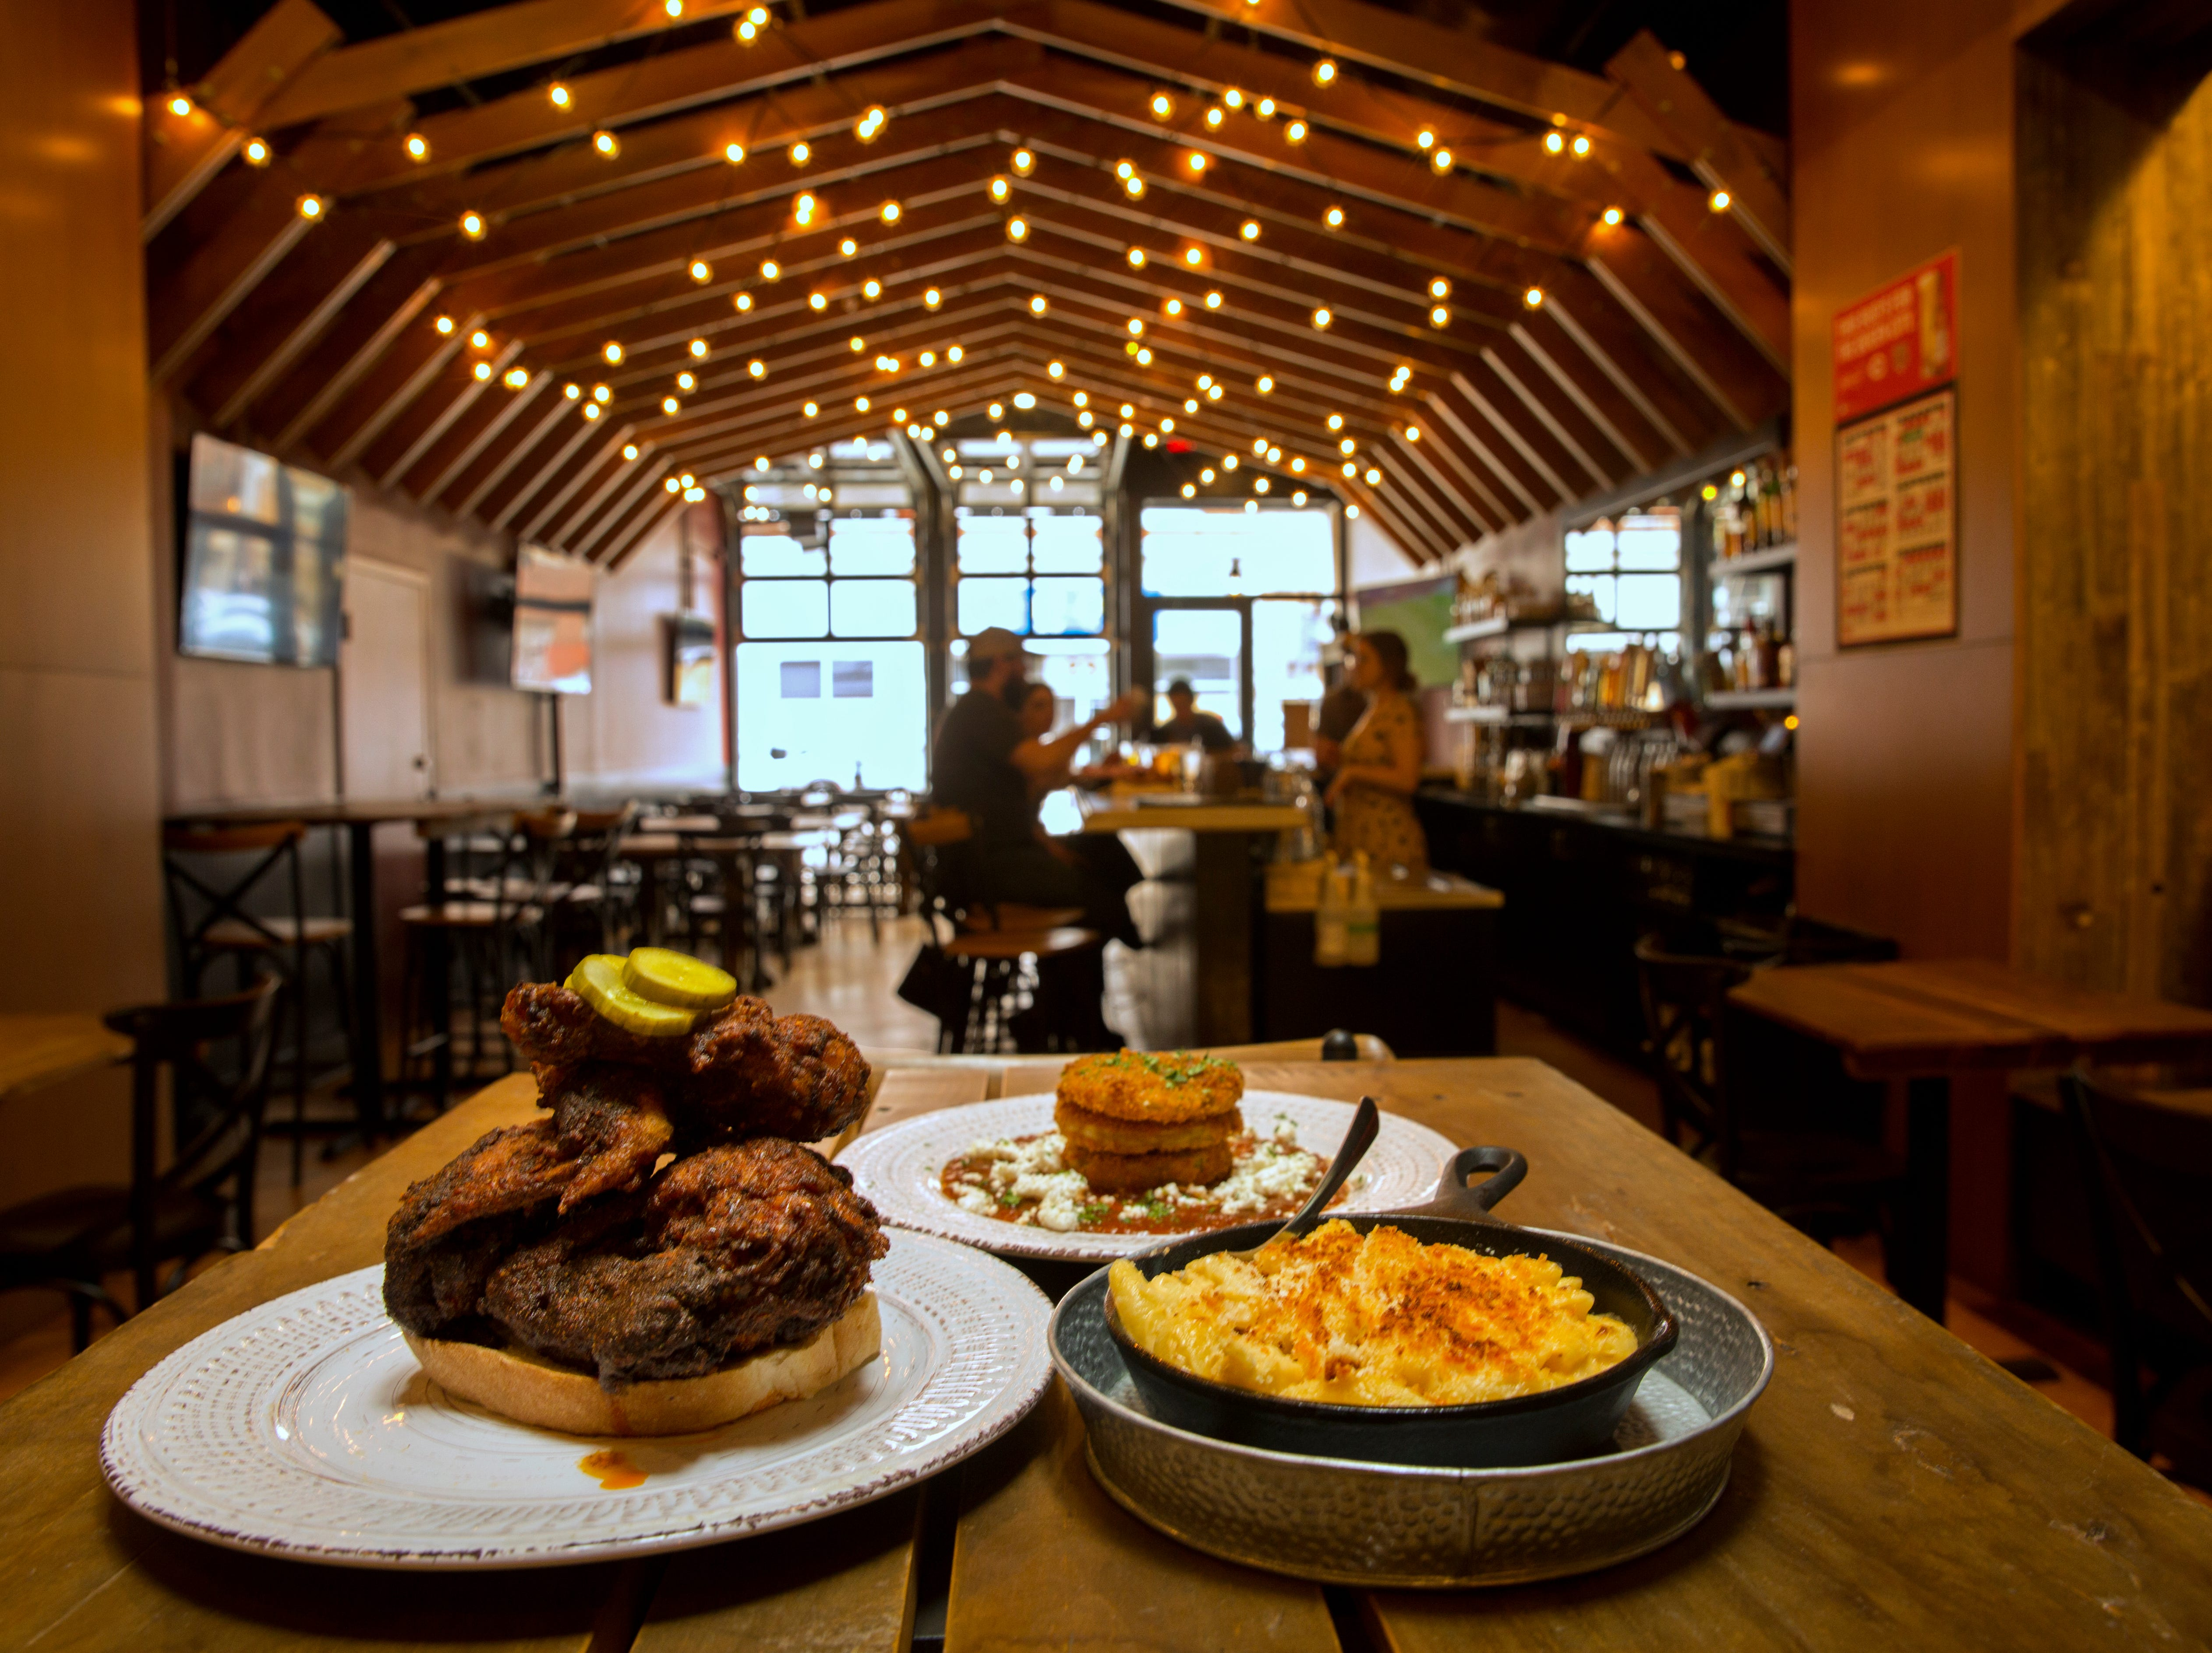 The Fiery Hen on Court Street between Race and Vine, opened in January of 2019. On their website, they say, 'they're bringing southern spice, aided by Cincy charm to the downtown corridor.' Dan Swormstedt is the owner. He also owns the Court Street Lobster Bar next door. Curtis Fowler is the general manager for both. Start with their fried green tomatoes with honey goat cheese, red sauce and parmesan. And then dig into the hot chicken, choosing from five spices levels, from Yella Belly to Bless Your Heart. And of course, try the Mac and cheese. Thirsty? They have a full bar. Court Street is undergoing its biggest change in years with the new 18-floor Kroger at Walnut Street. The 560-space garage is already opened. The grocery store will open in the fall and include a food court. The development will also have 139 apartments. Photographed May 1, 2019.